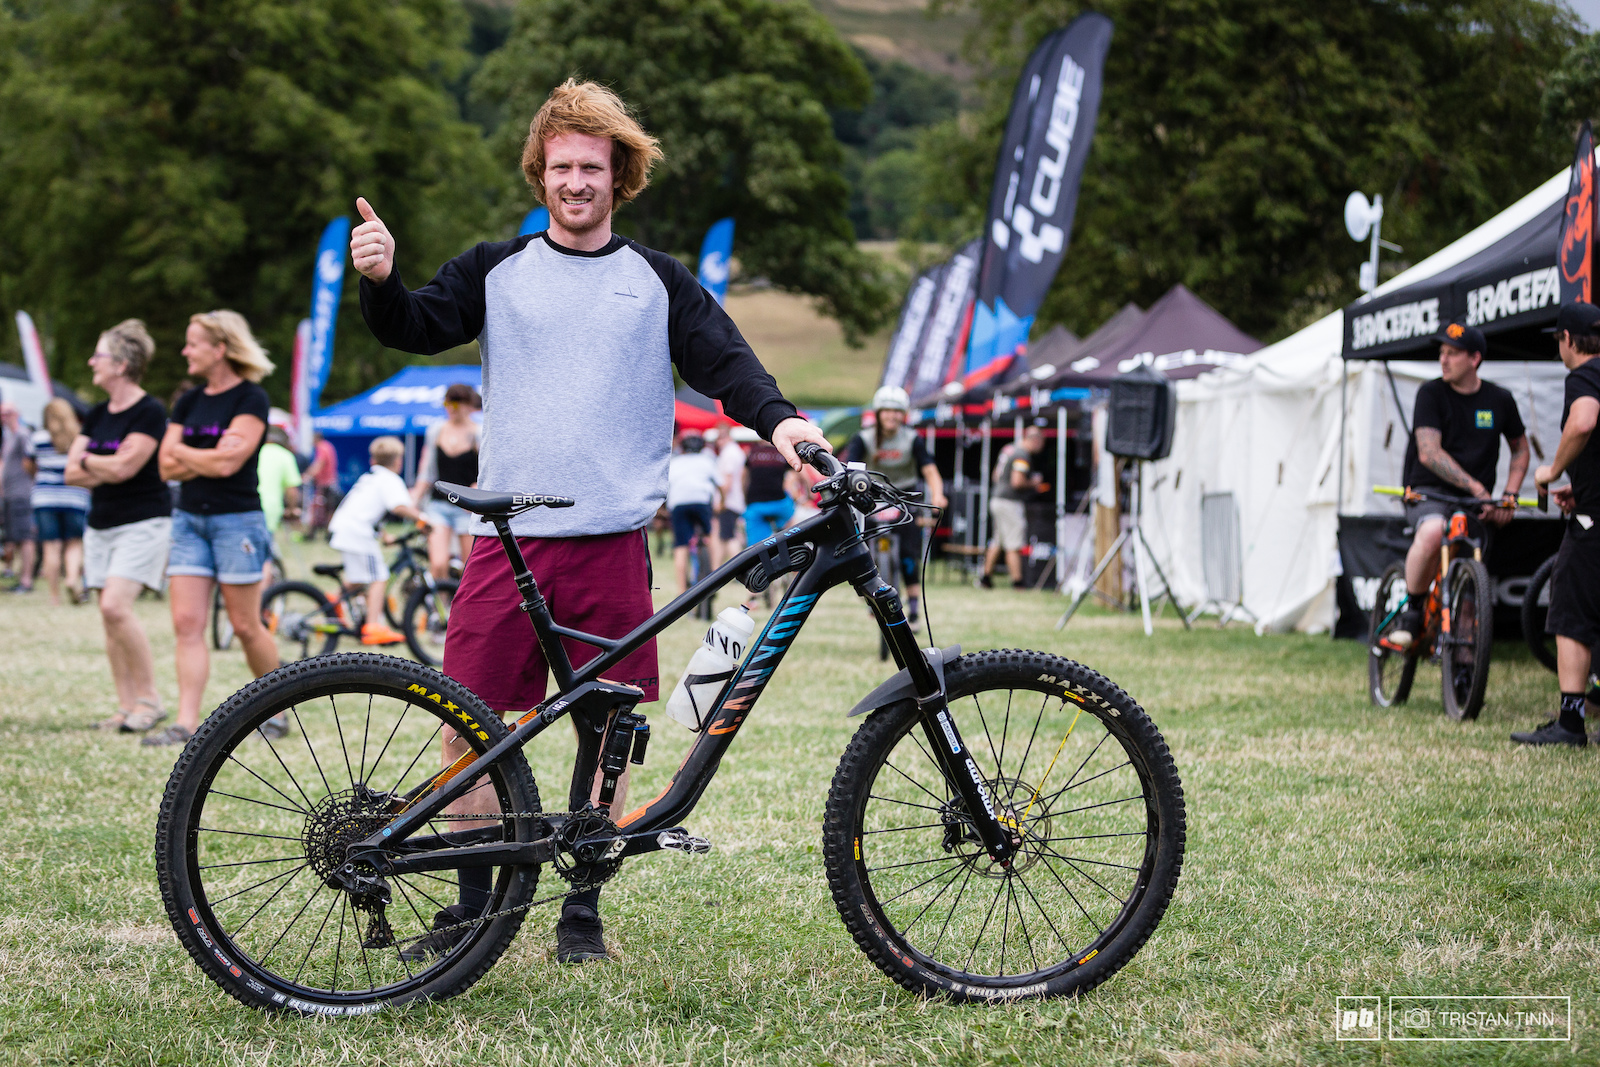 Liam Moynihan and his Canyon Strive